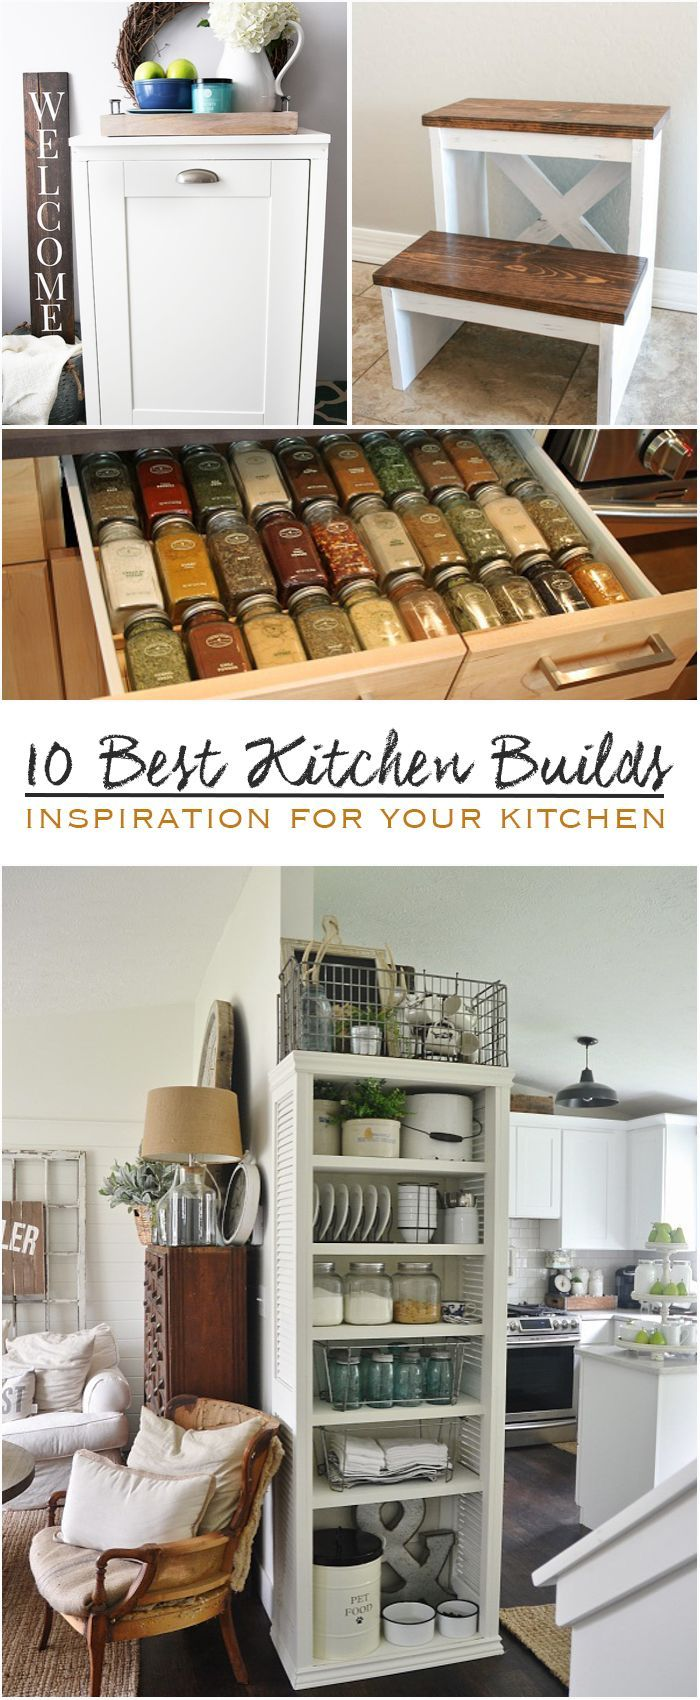 10 Best Kitchen Builds #projects #inspiration #blogger #DIY #tutorial #howto #ma...